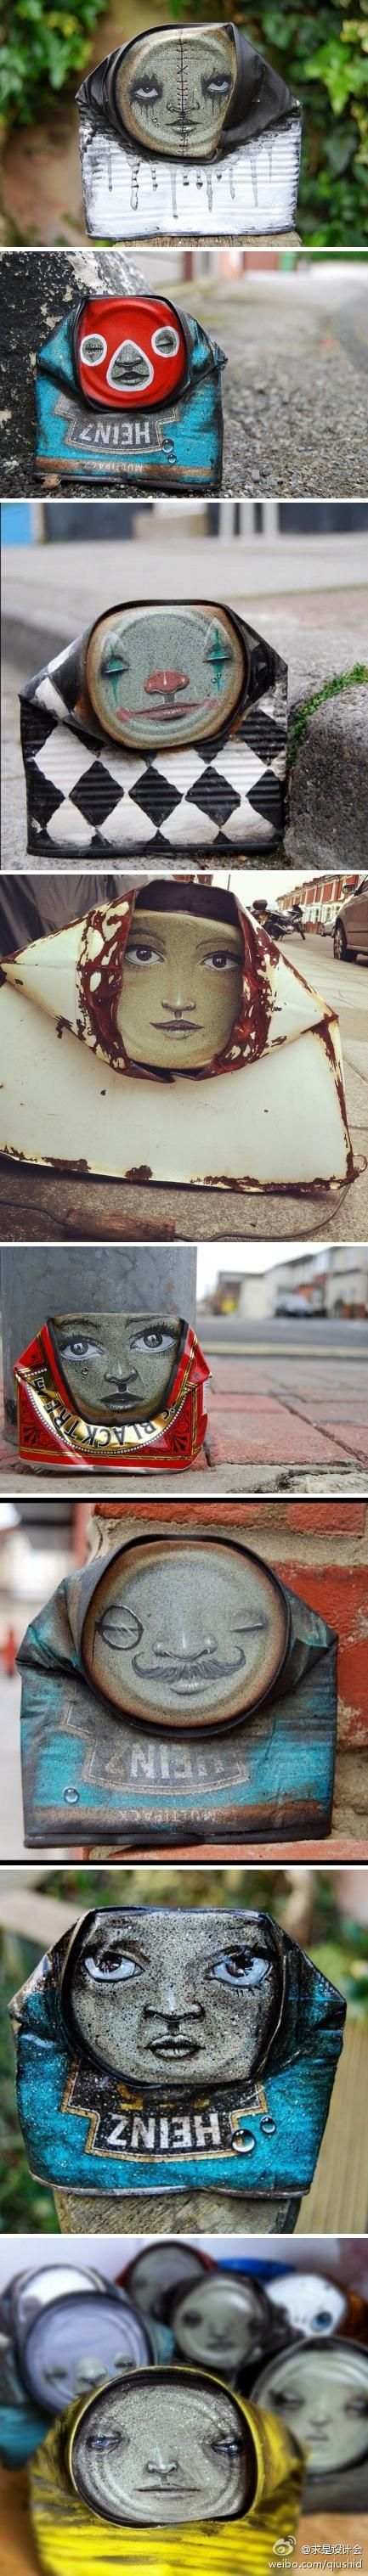 Proving that art can be made with anything and anywhere!